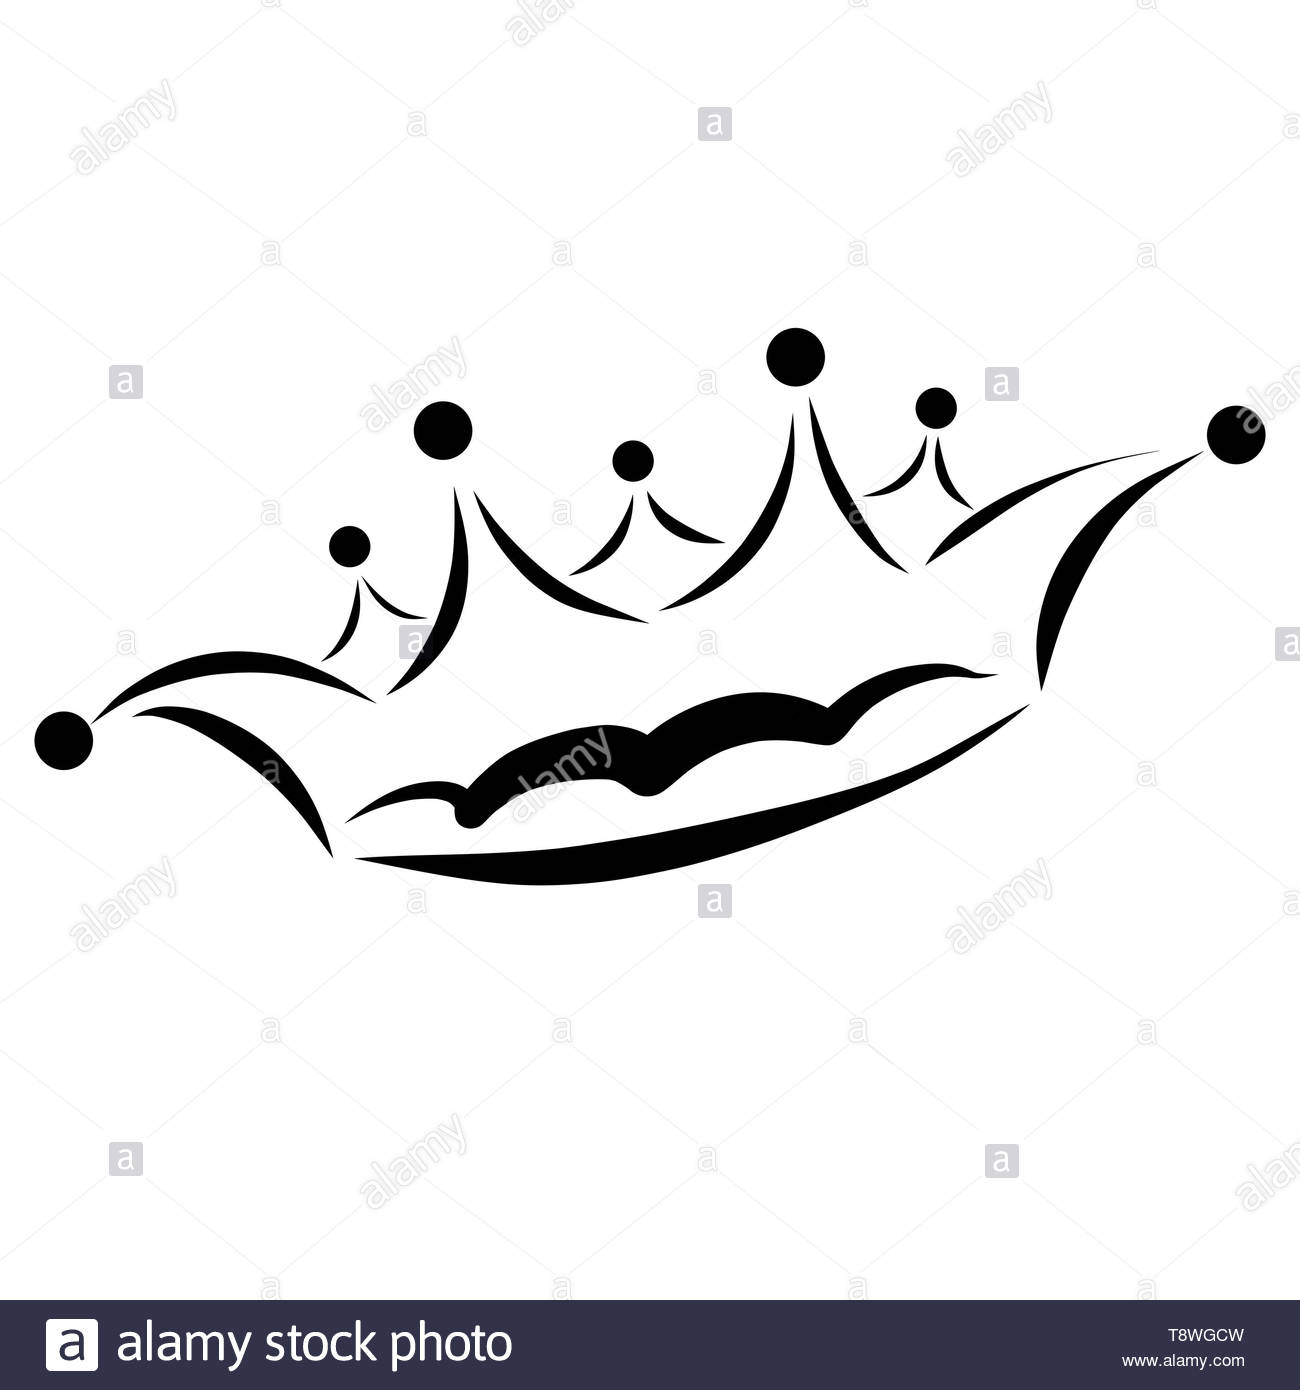 female crown, black sketch on white background - Stock Image